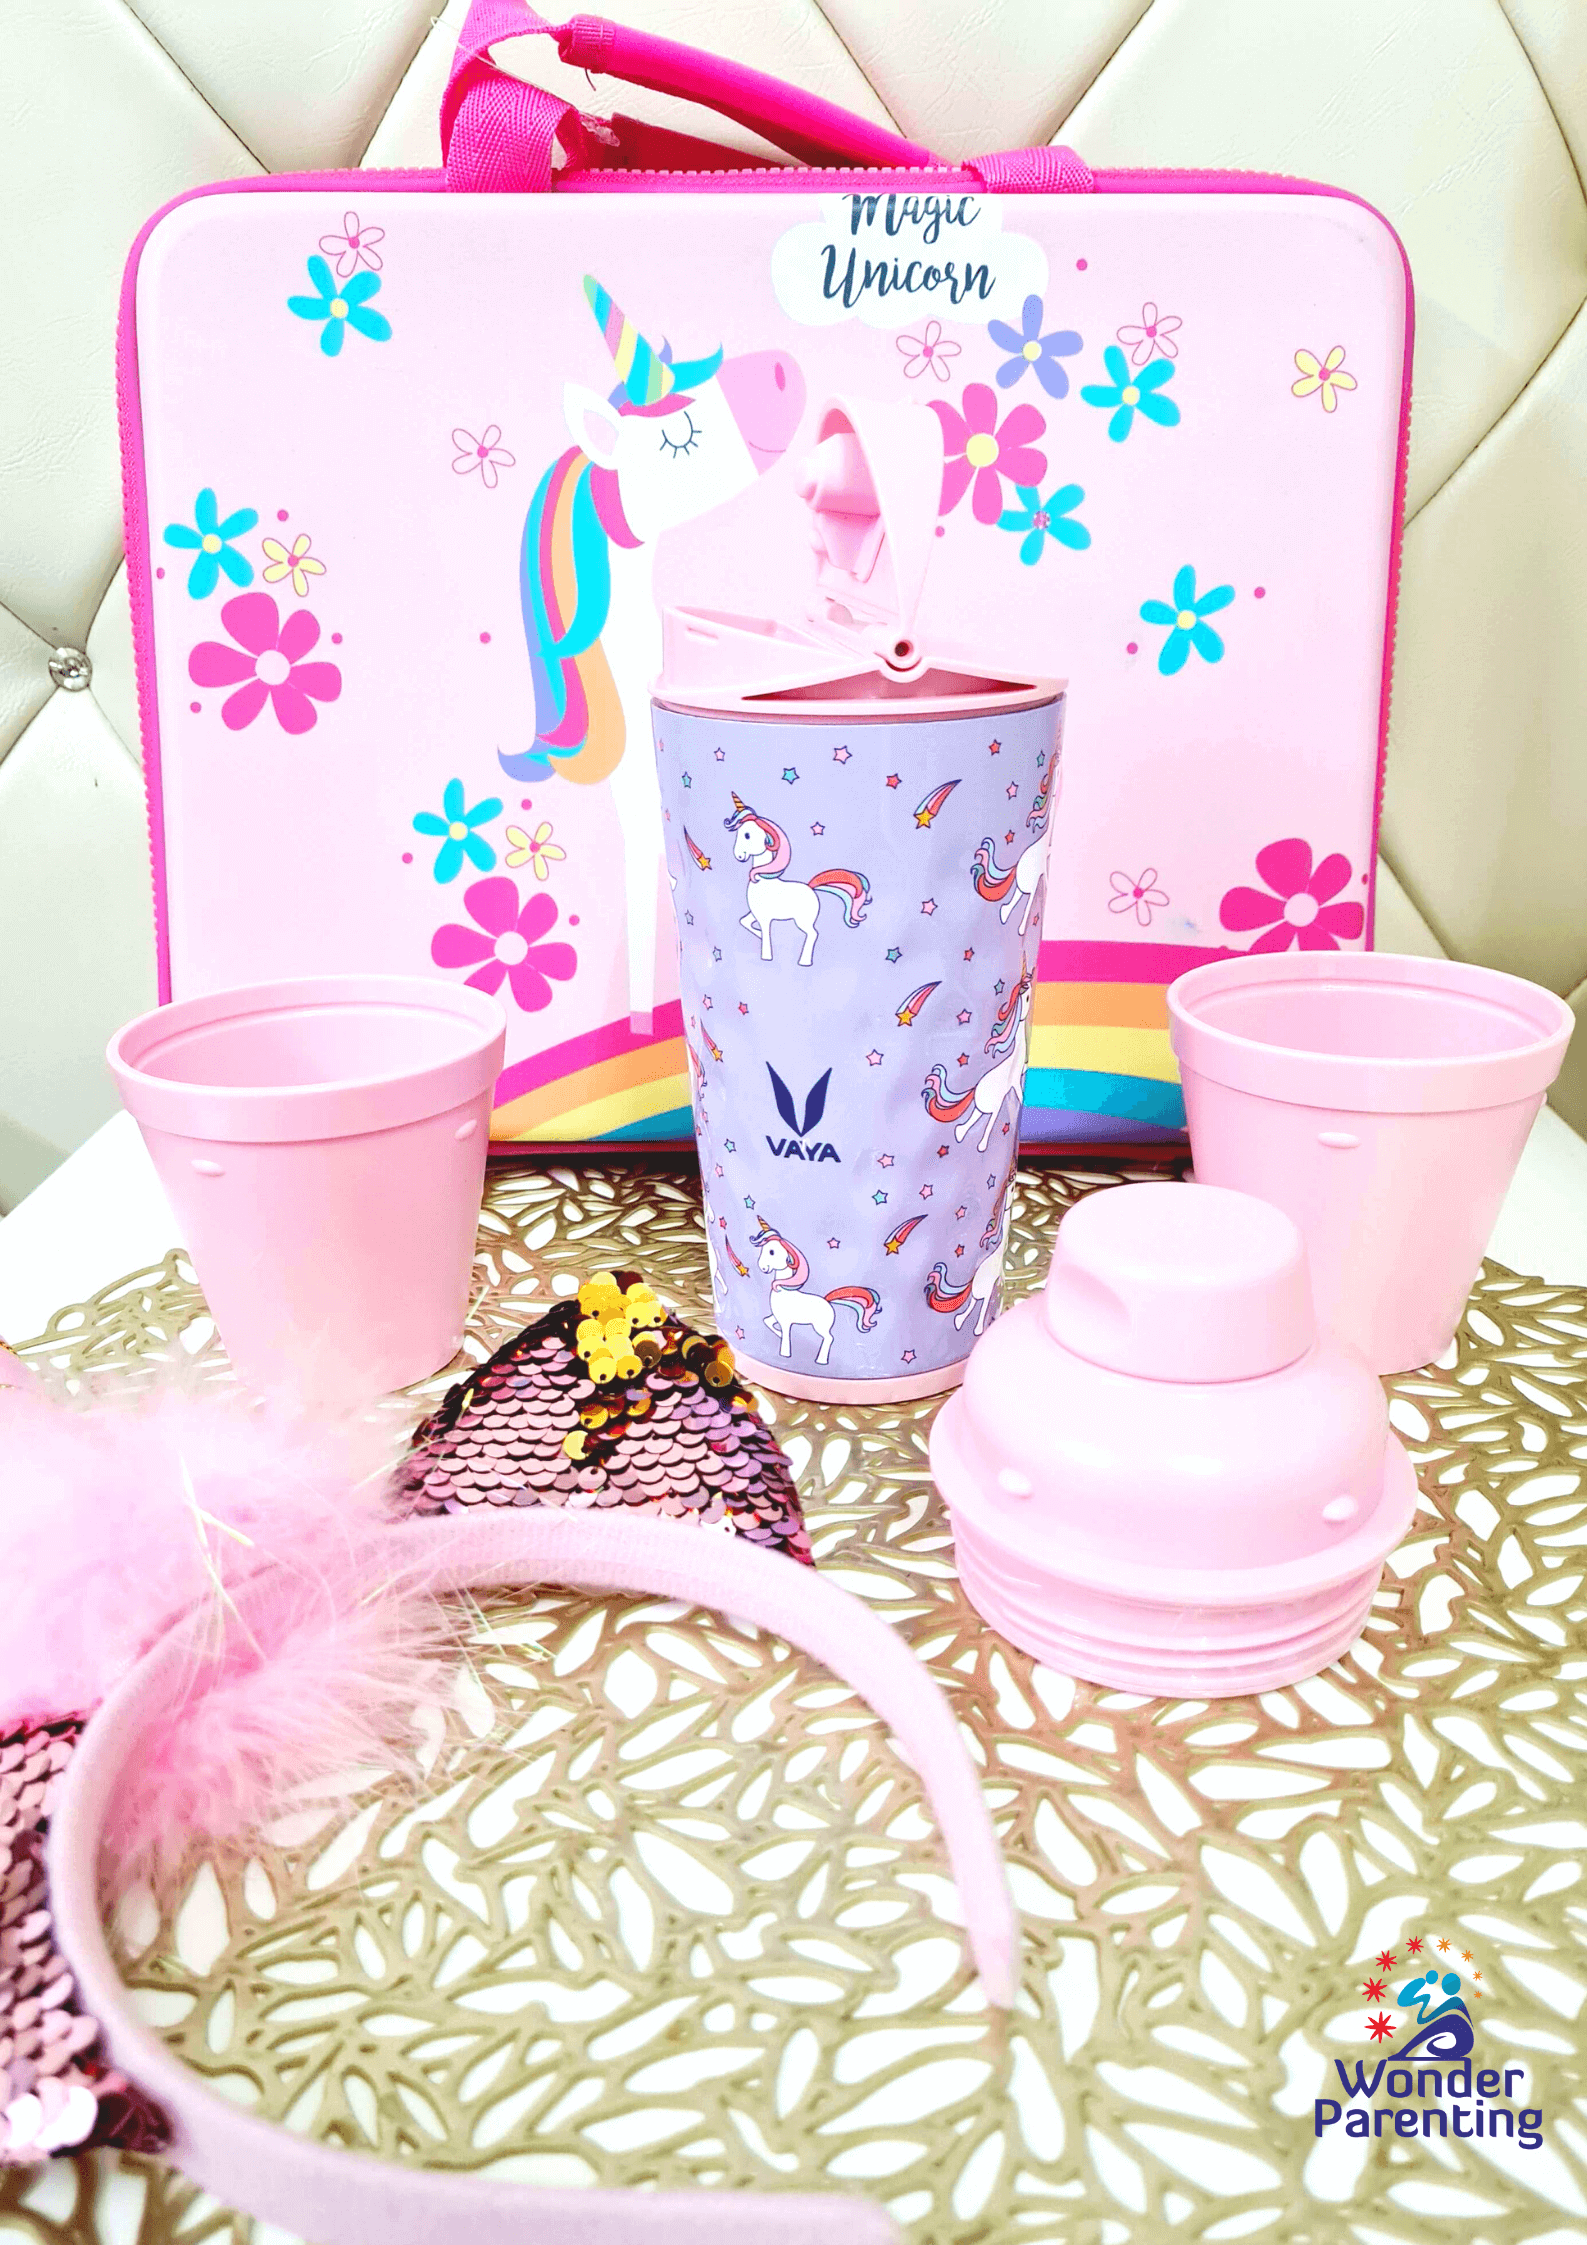 stainless-steel-insulated-water-bottle-unicorn-wonderparenting